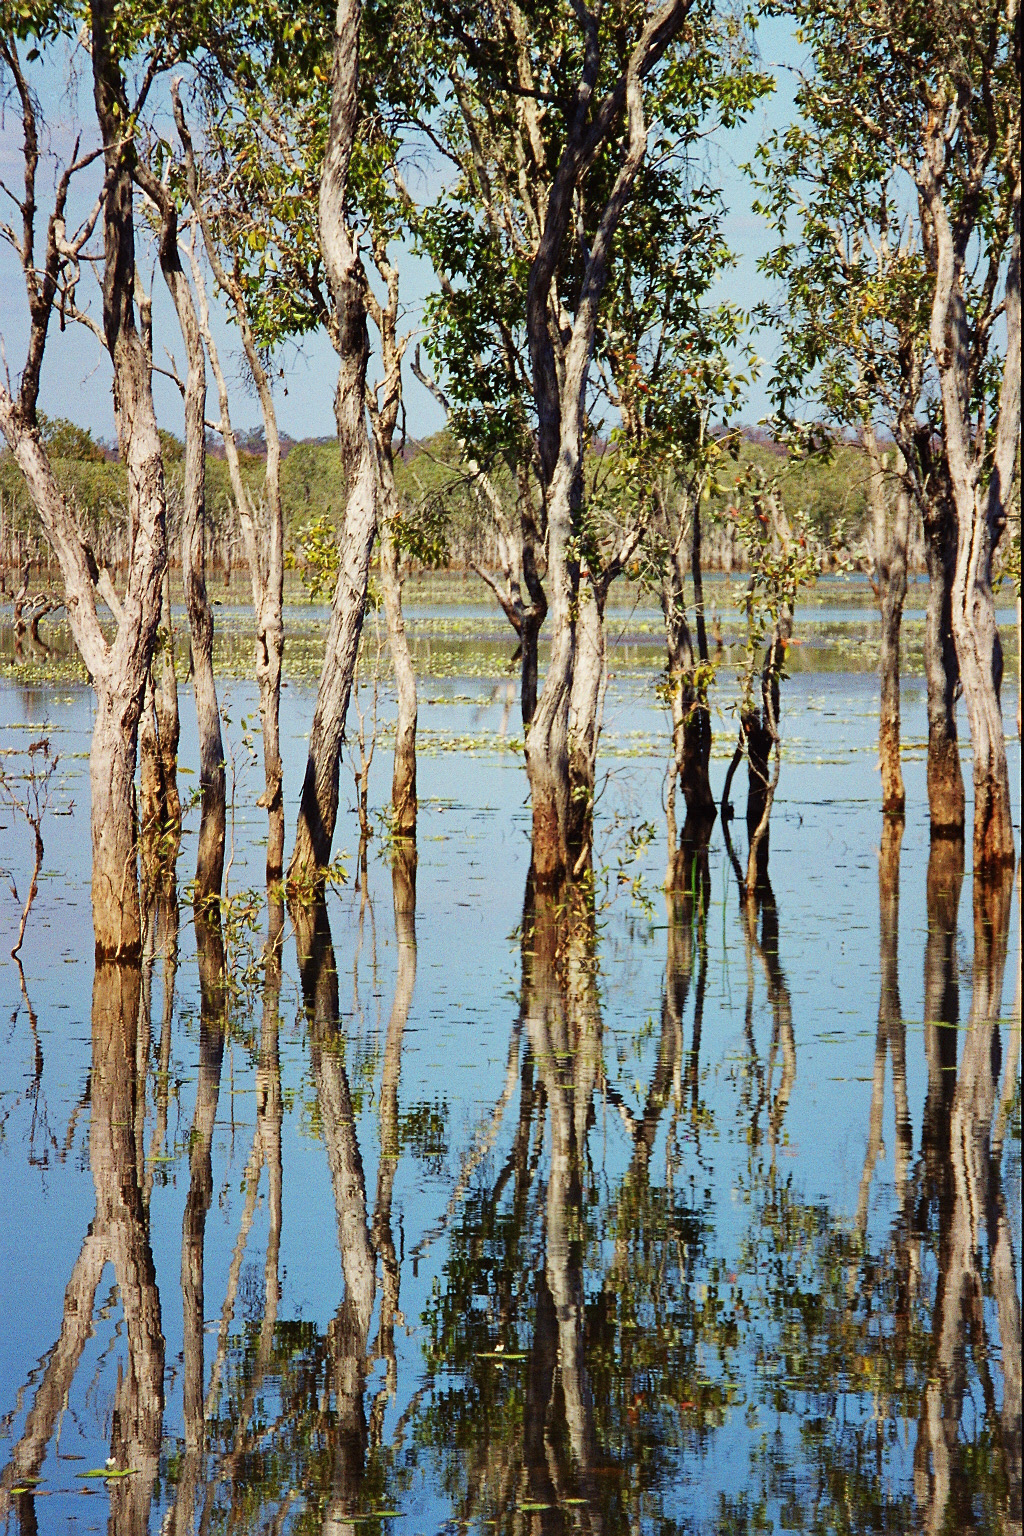 Seasonal floods in Arnheim Land, Kakadu National Park, Northern Territory, Australia